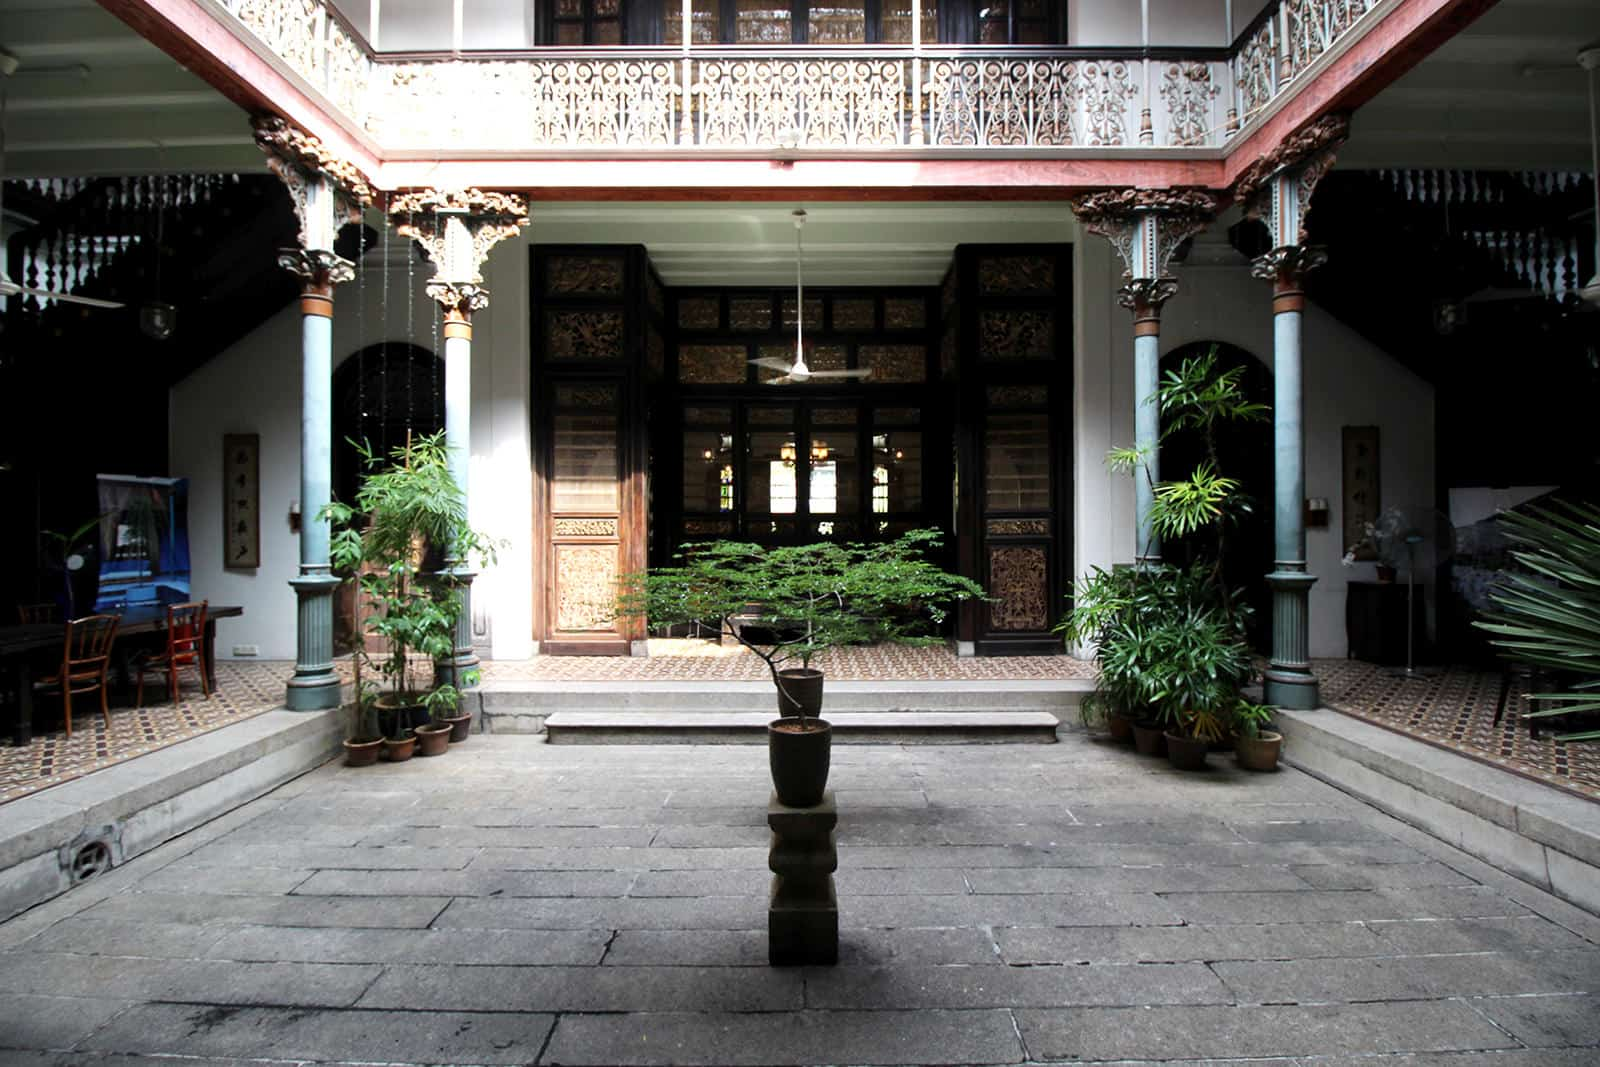 boutique-hotel-penang-island-blue-mansion-architecture-03-1_tpforg Courtyard